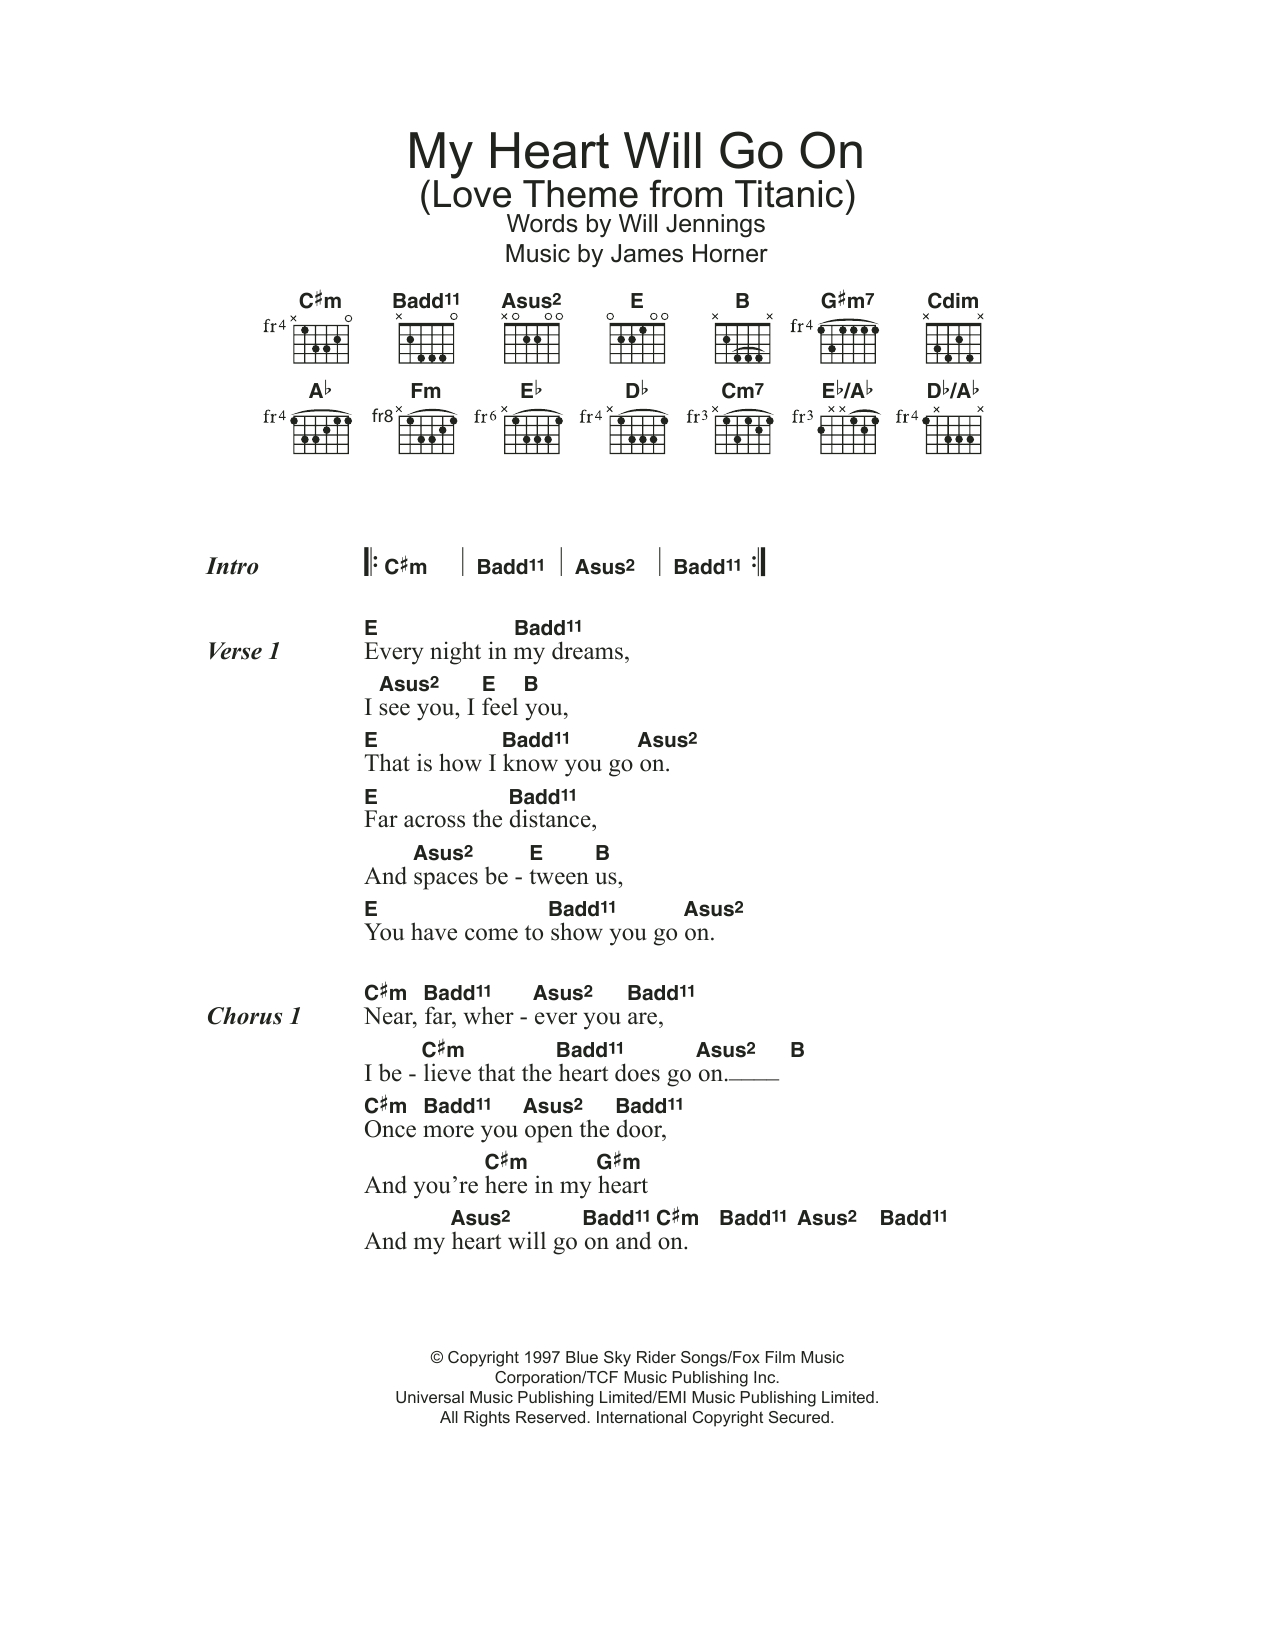 King Of My Heart Chords My Heart Will Go On Love Theme From Titanic Sheet Music Celine